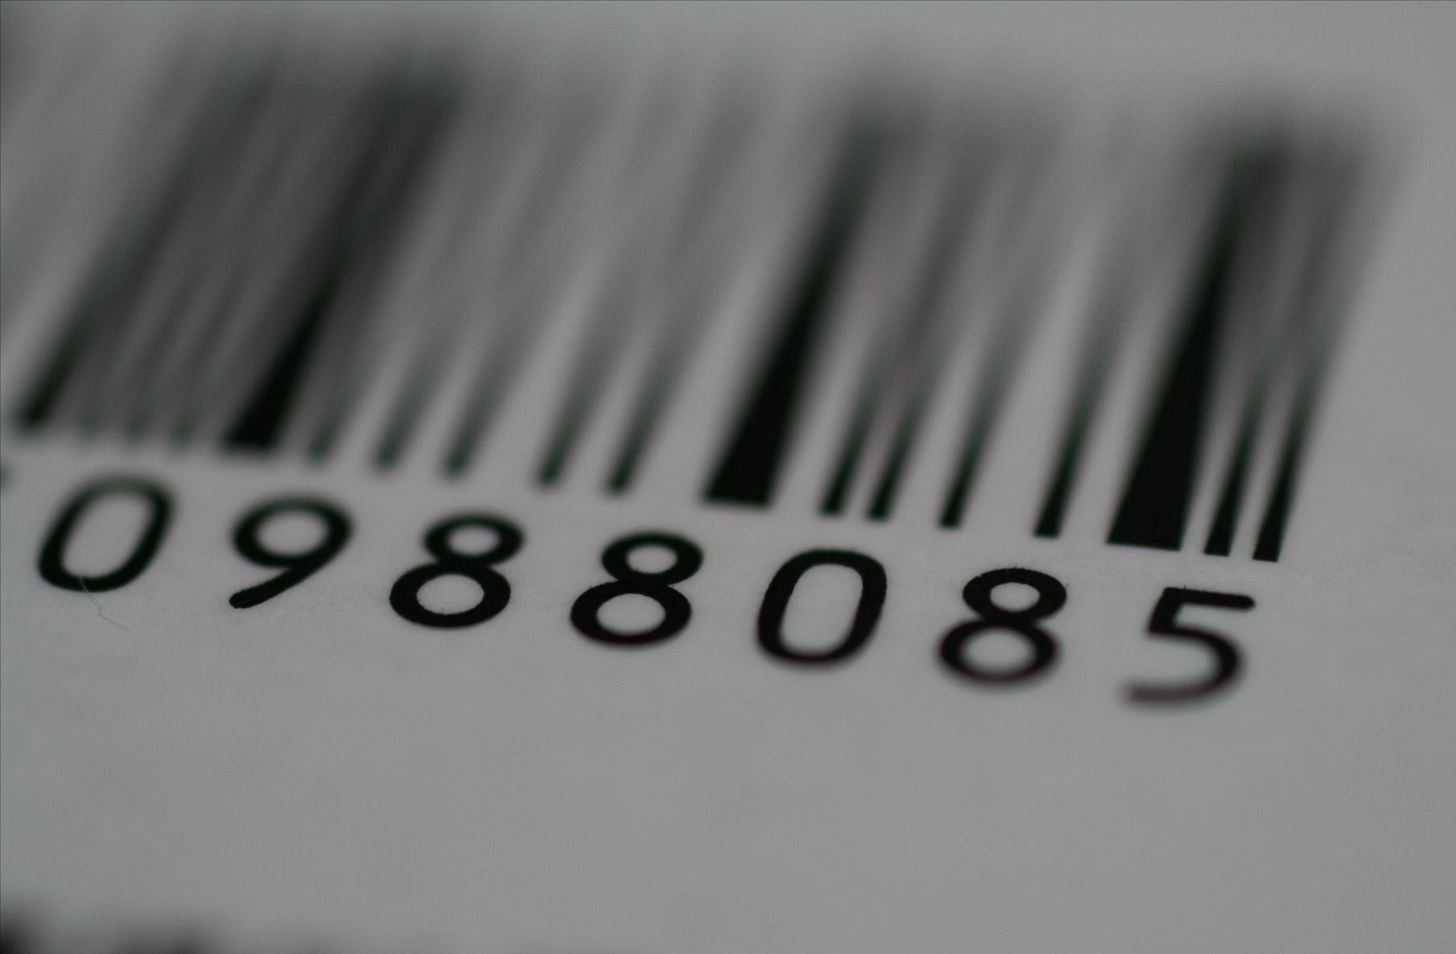 Save Money on Groceries! Scam… Er… Scan Your Own Stuff at Self-Checkout